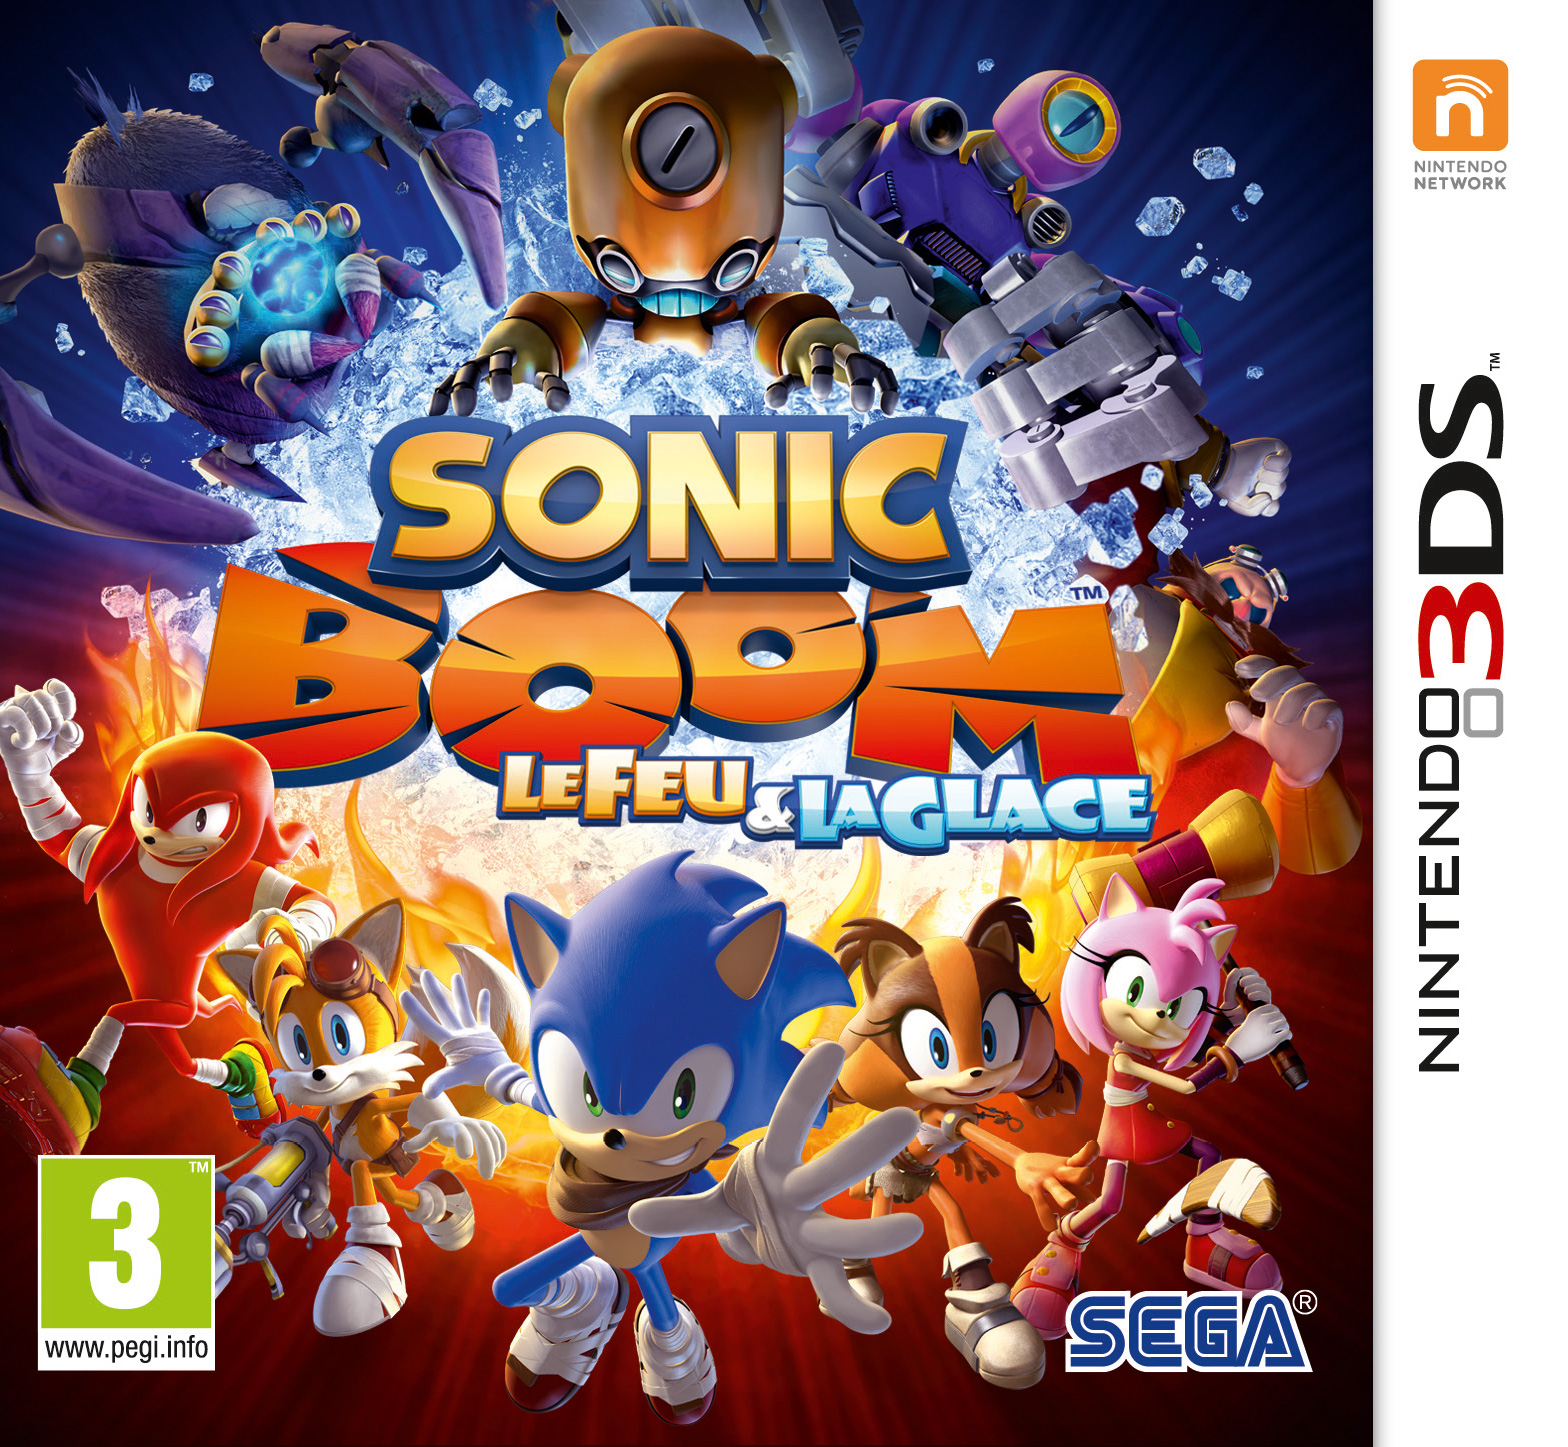 SonicBoom-LeFeuetlaGlace 3DS Jaquette 002